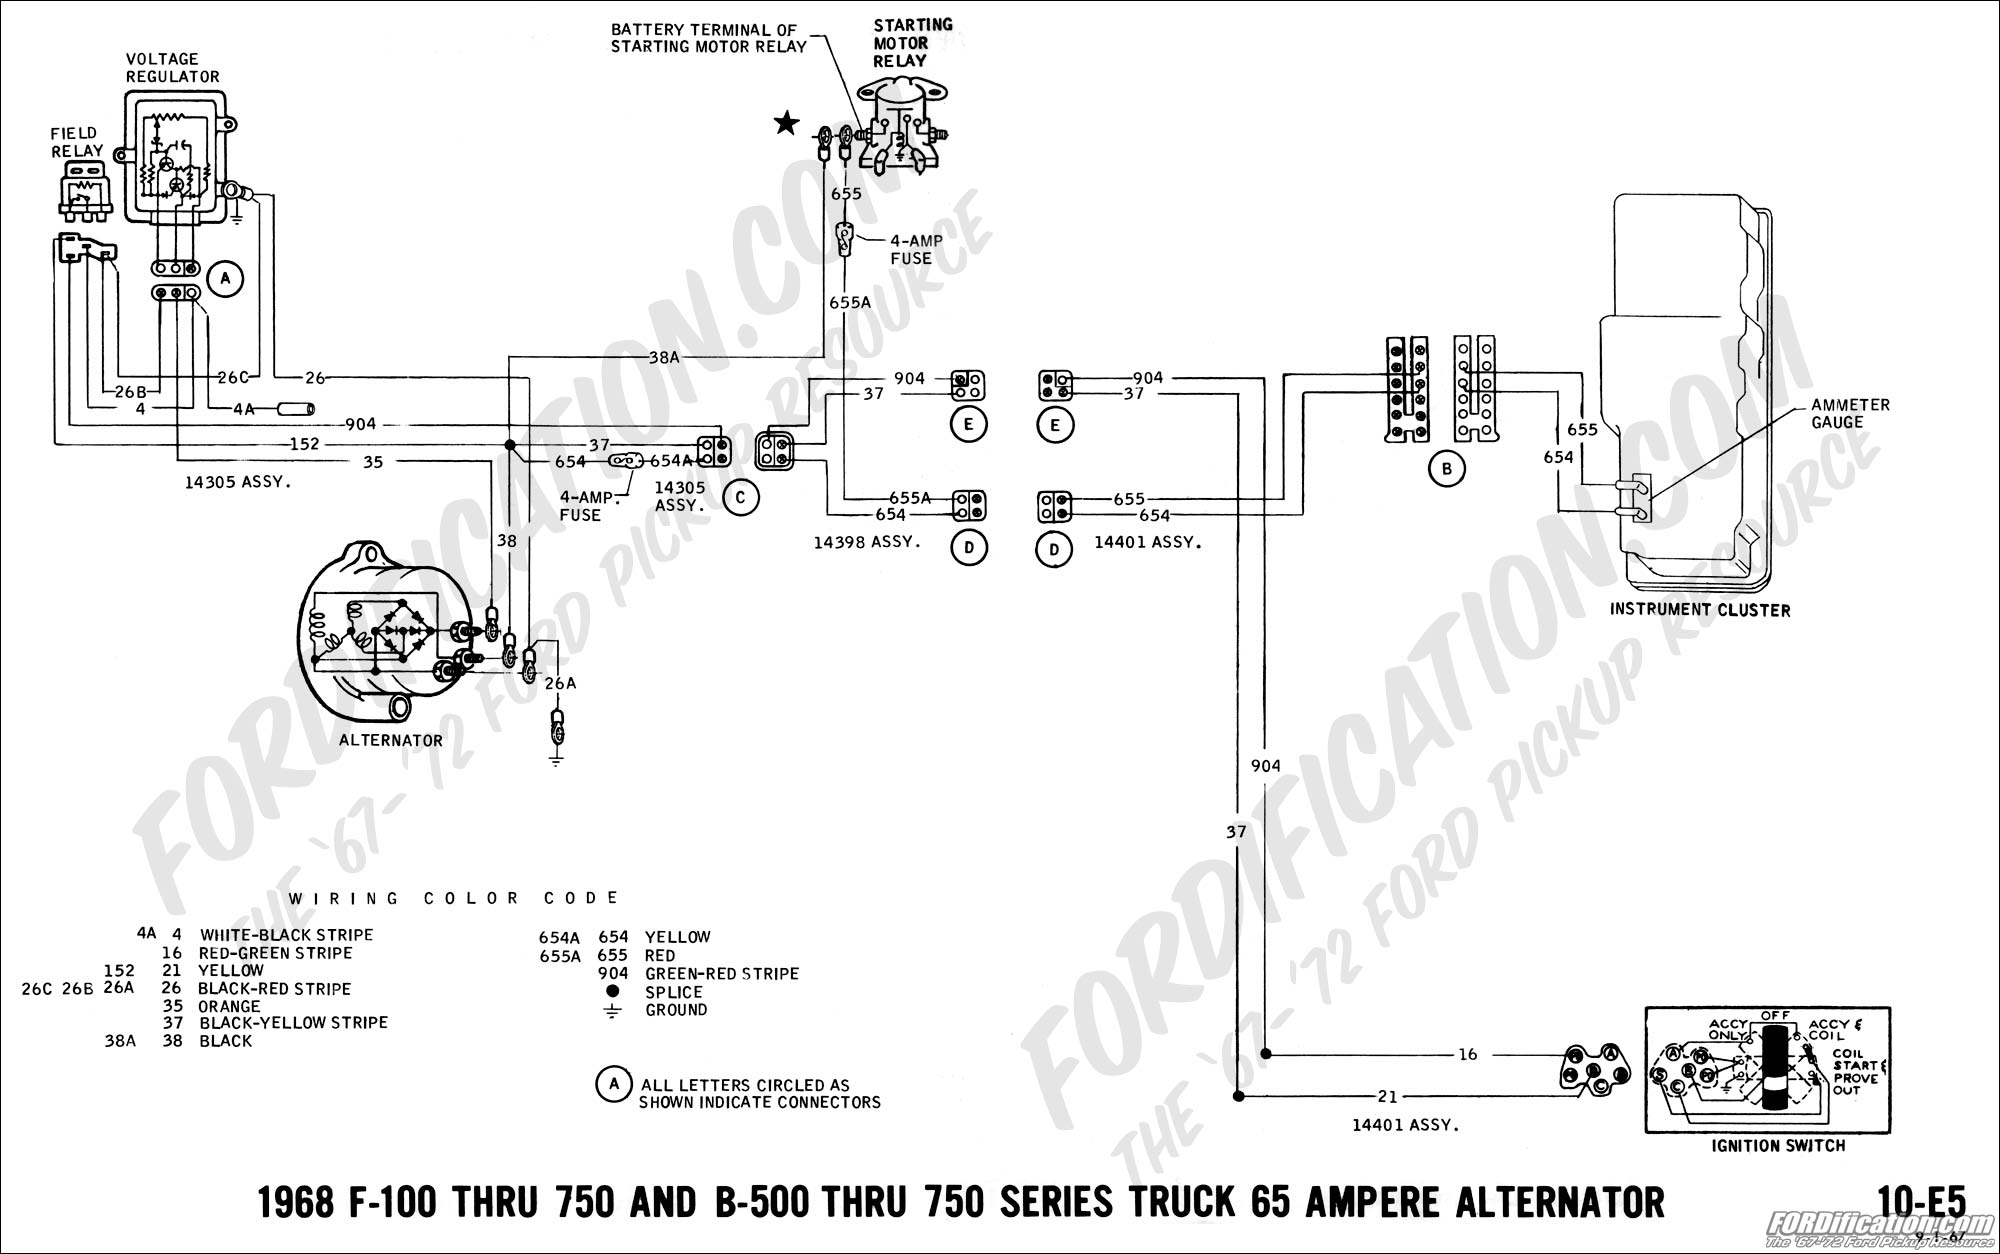 1982 Vw Rabbit Diesel Wiring Diagram Opinions About Fuse Ford Truck Technical Drawings And Schematics Section H Diagrams Pick Up